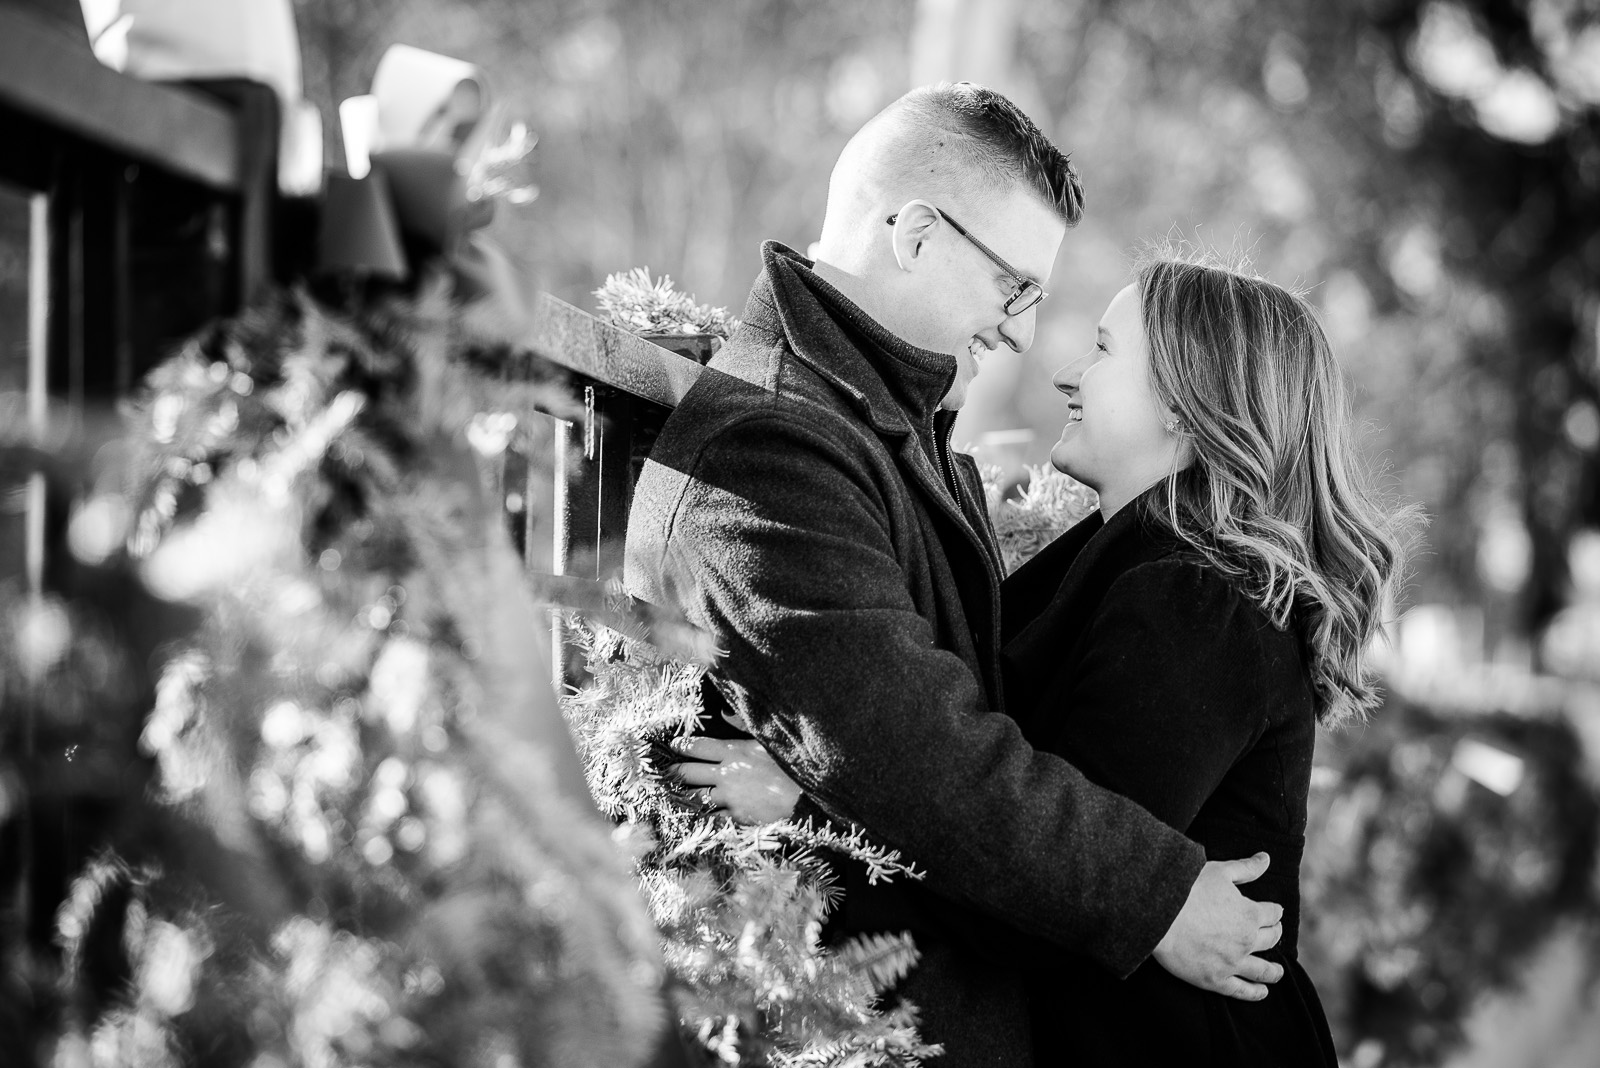 Eric_and_Christy_Photography_Engagement_Erica_Mike-13